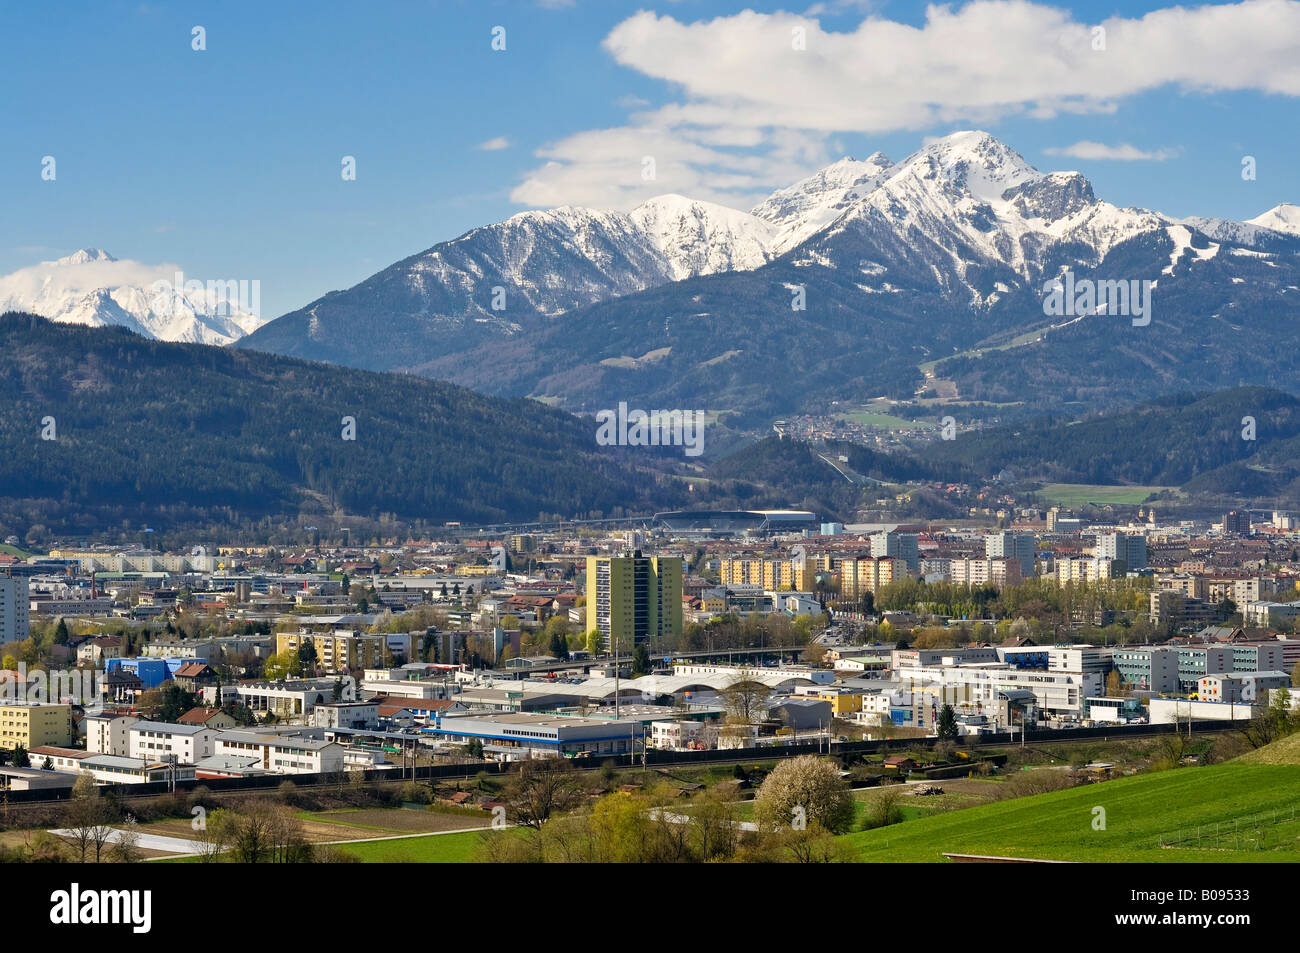 view of innsbruck and snow capped mt serles mt nockspitze mt stock photo 17411943 alamy. Black Bedroom Furniture Sets. Home Design Ideas